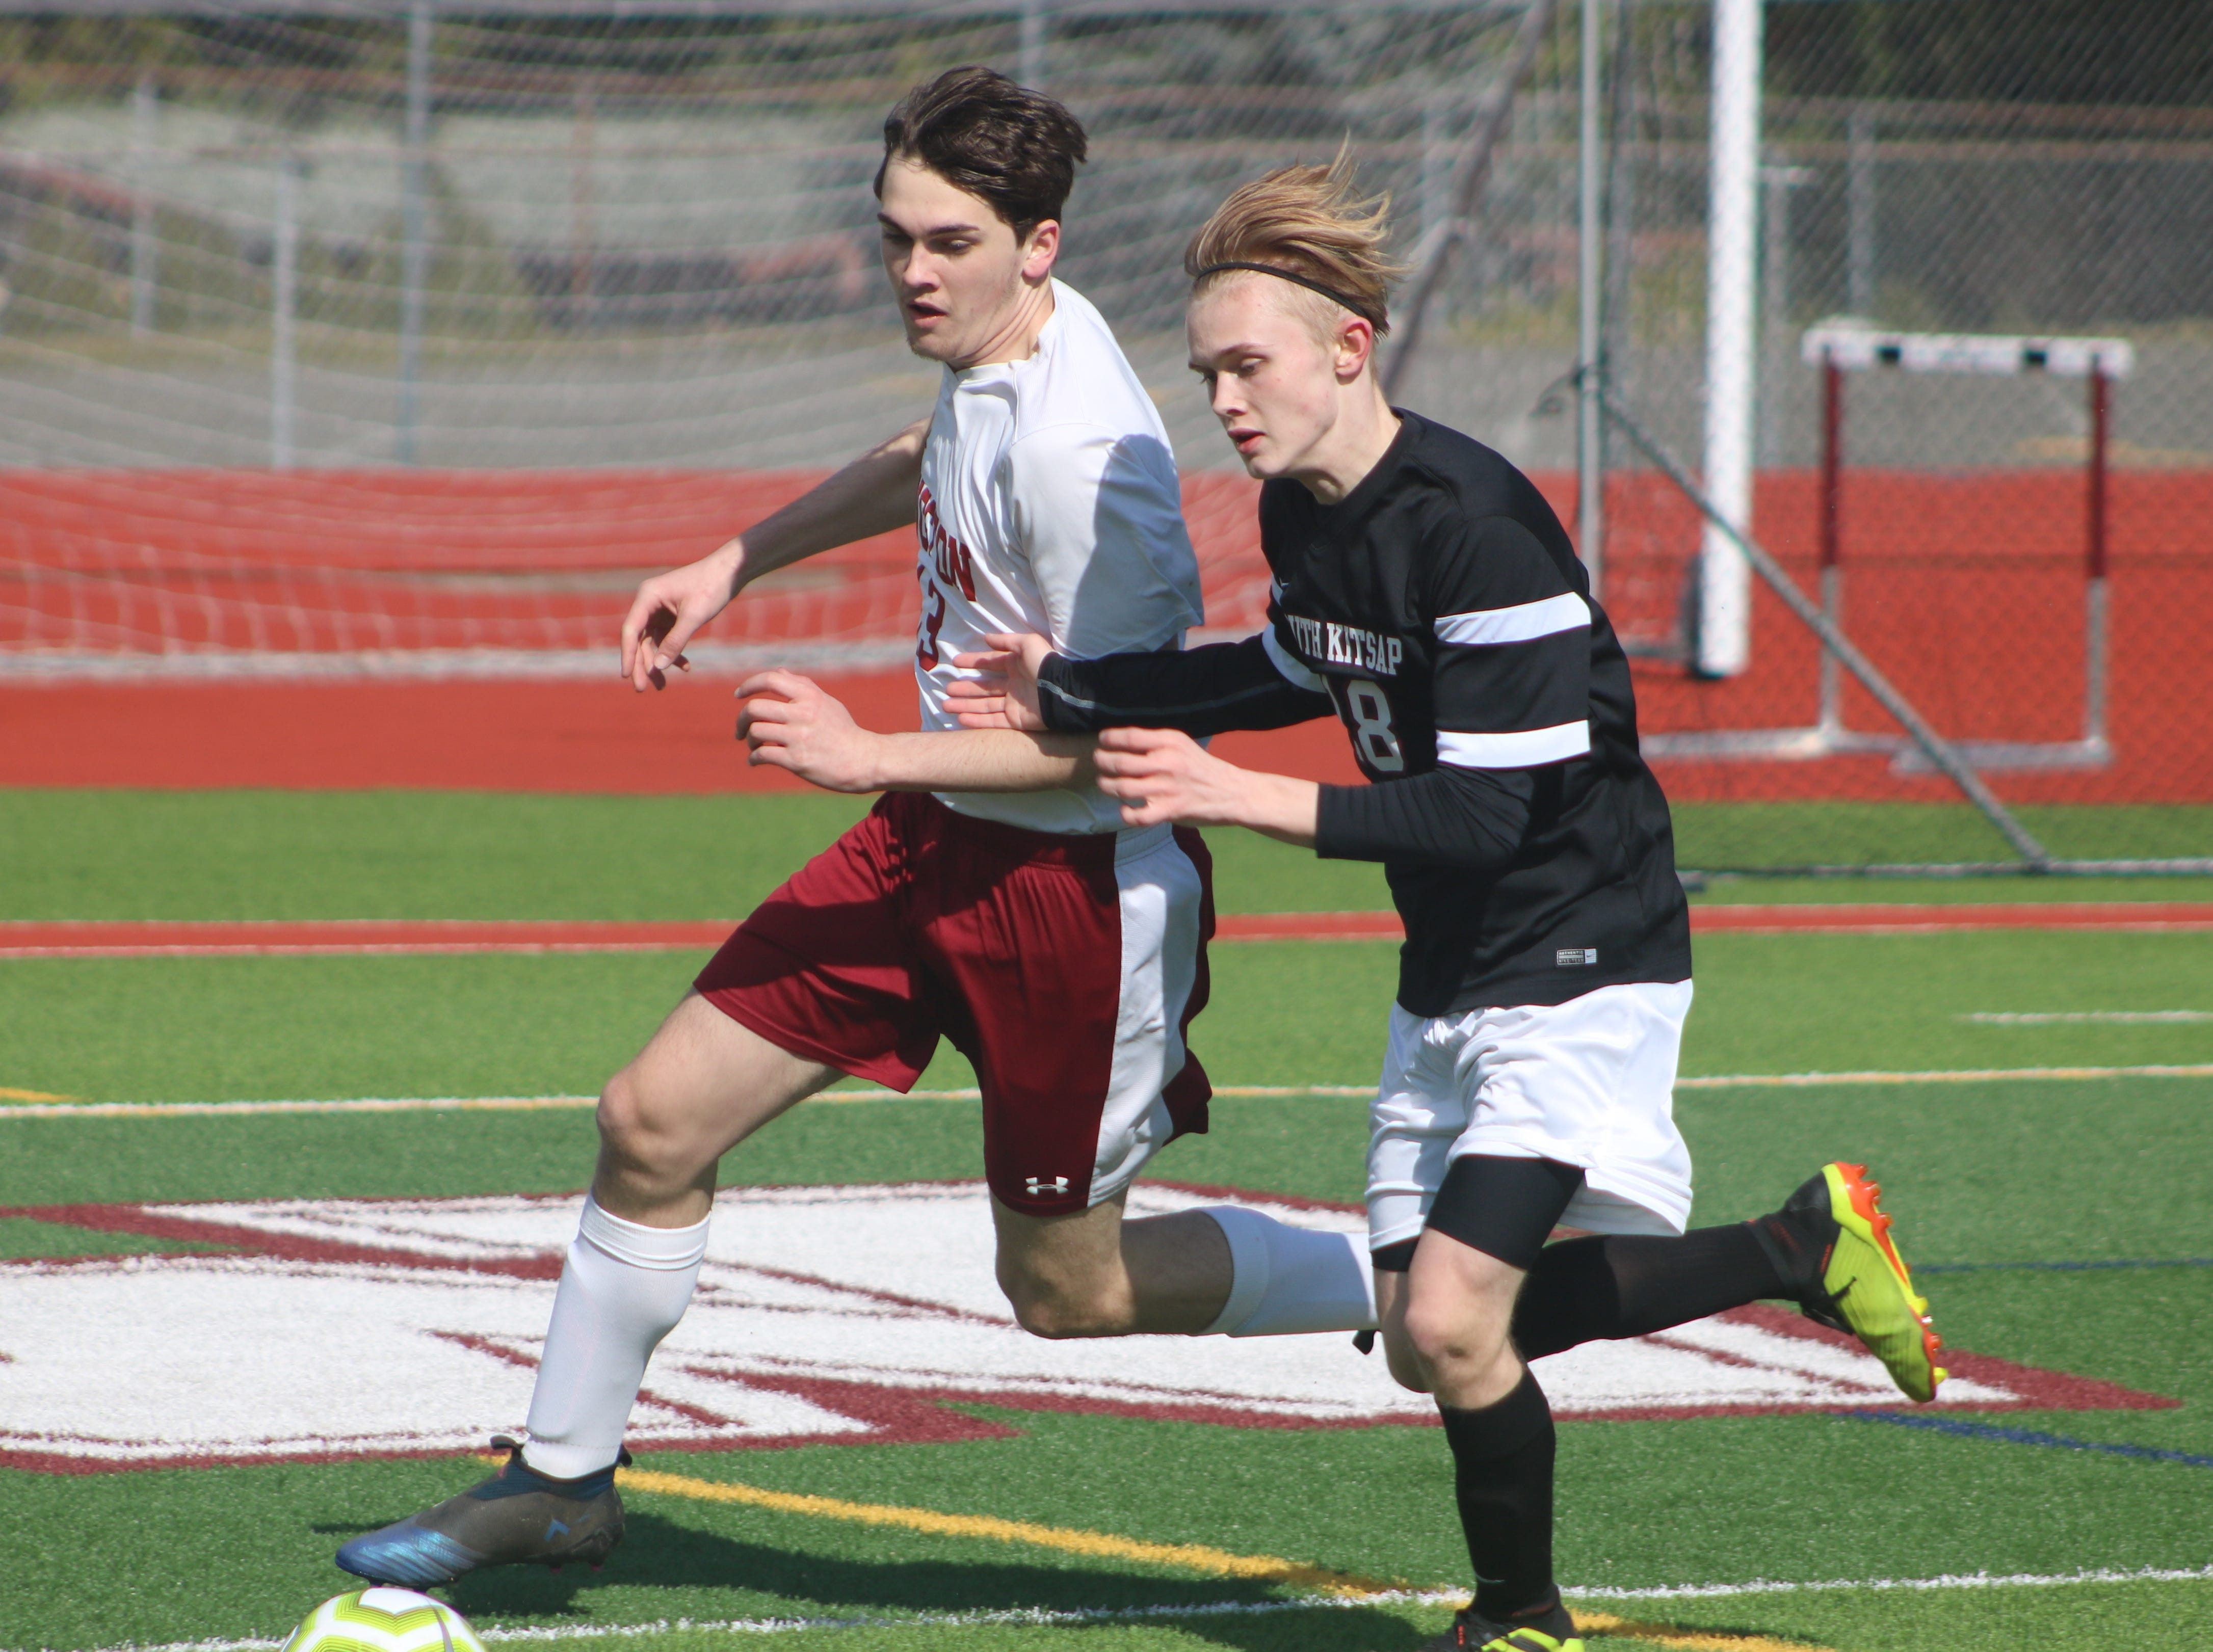 South Kitsap's boys soccer team defeated Kingston 3-0 in a nonleague game Saturday in Port Orchard.